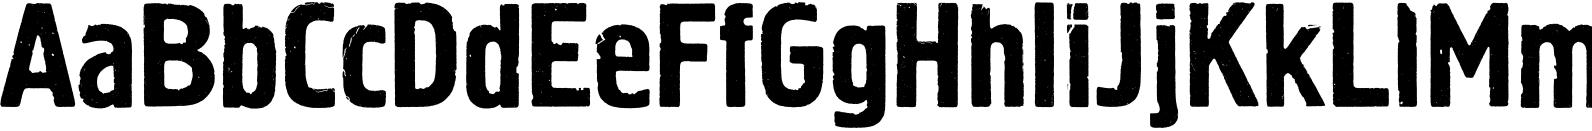 Mr Tiger Regular Font